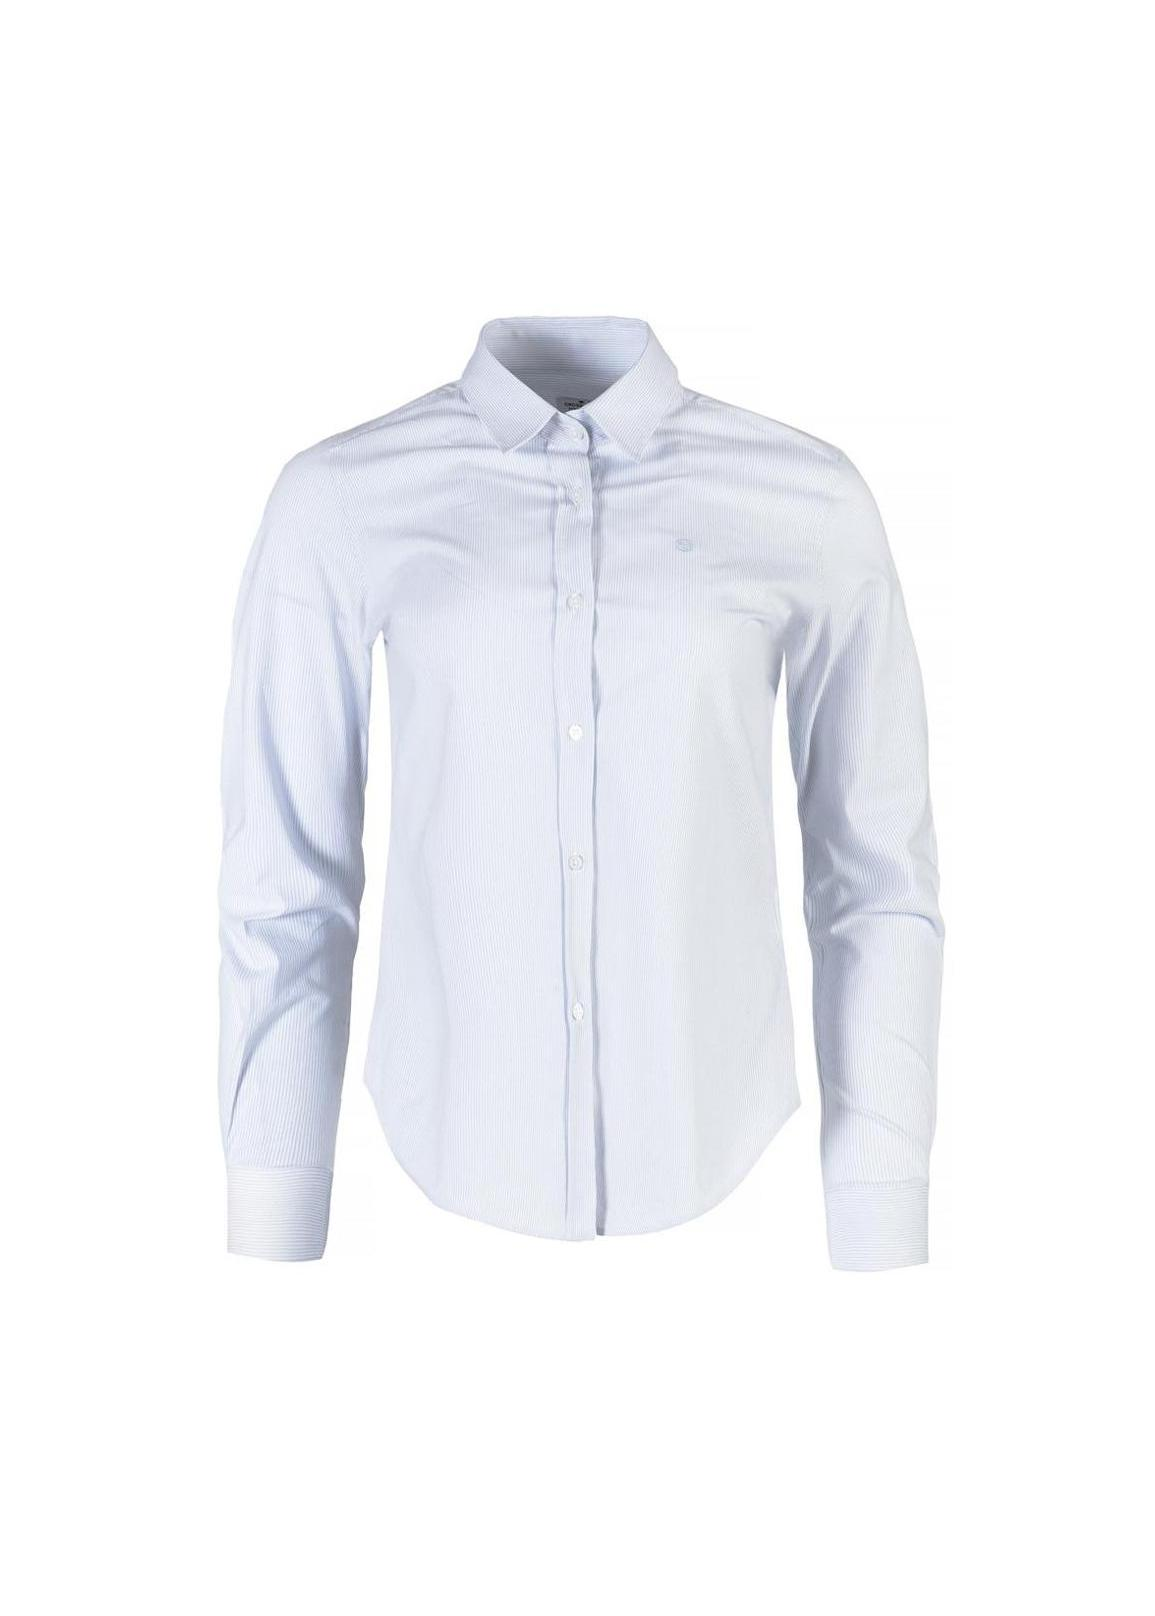 Cross Jeans® Shirt Stripe - White (603)